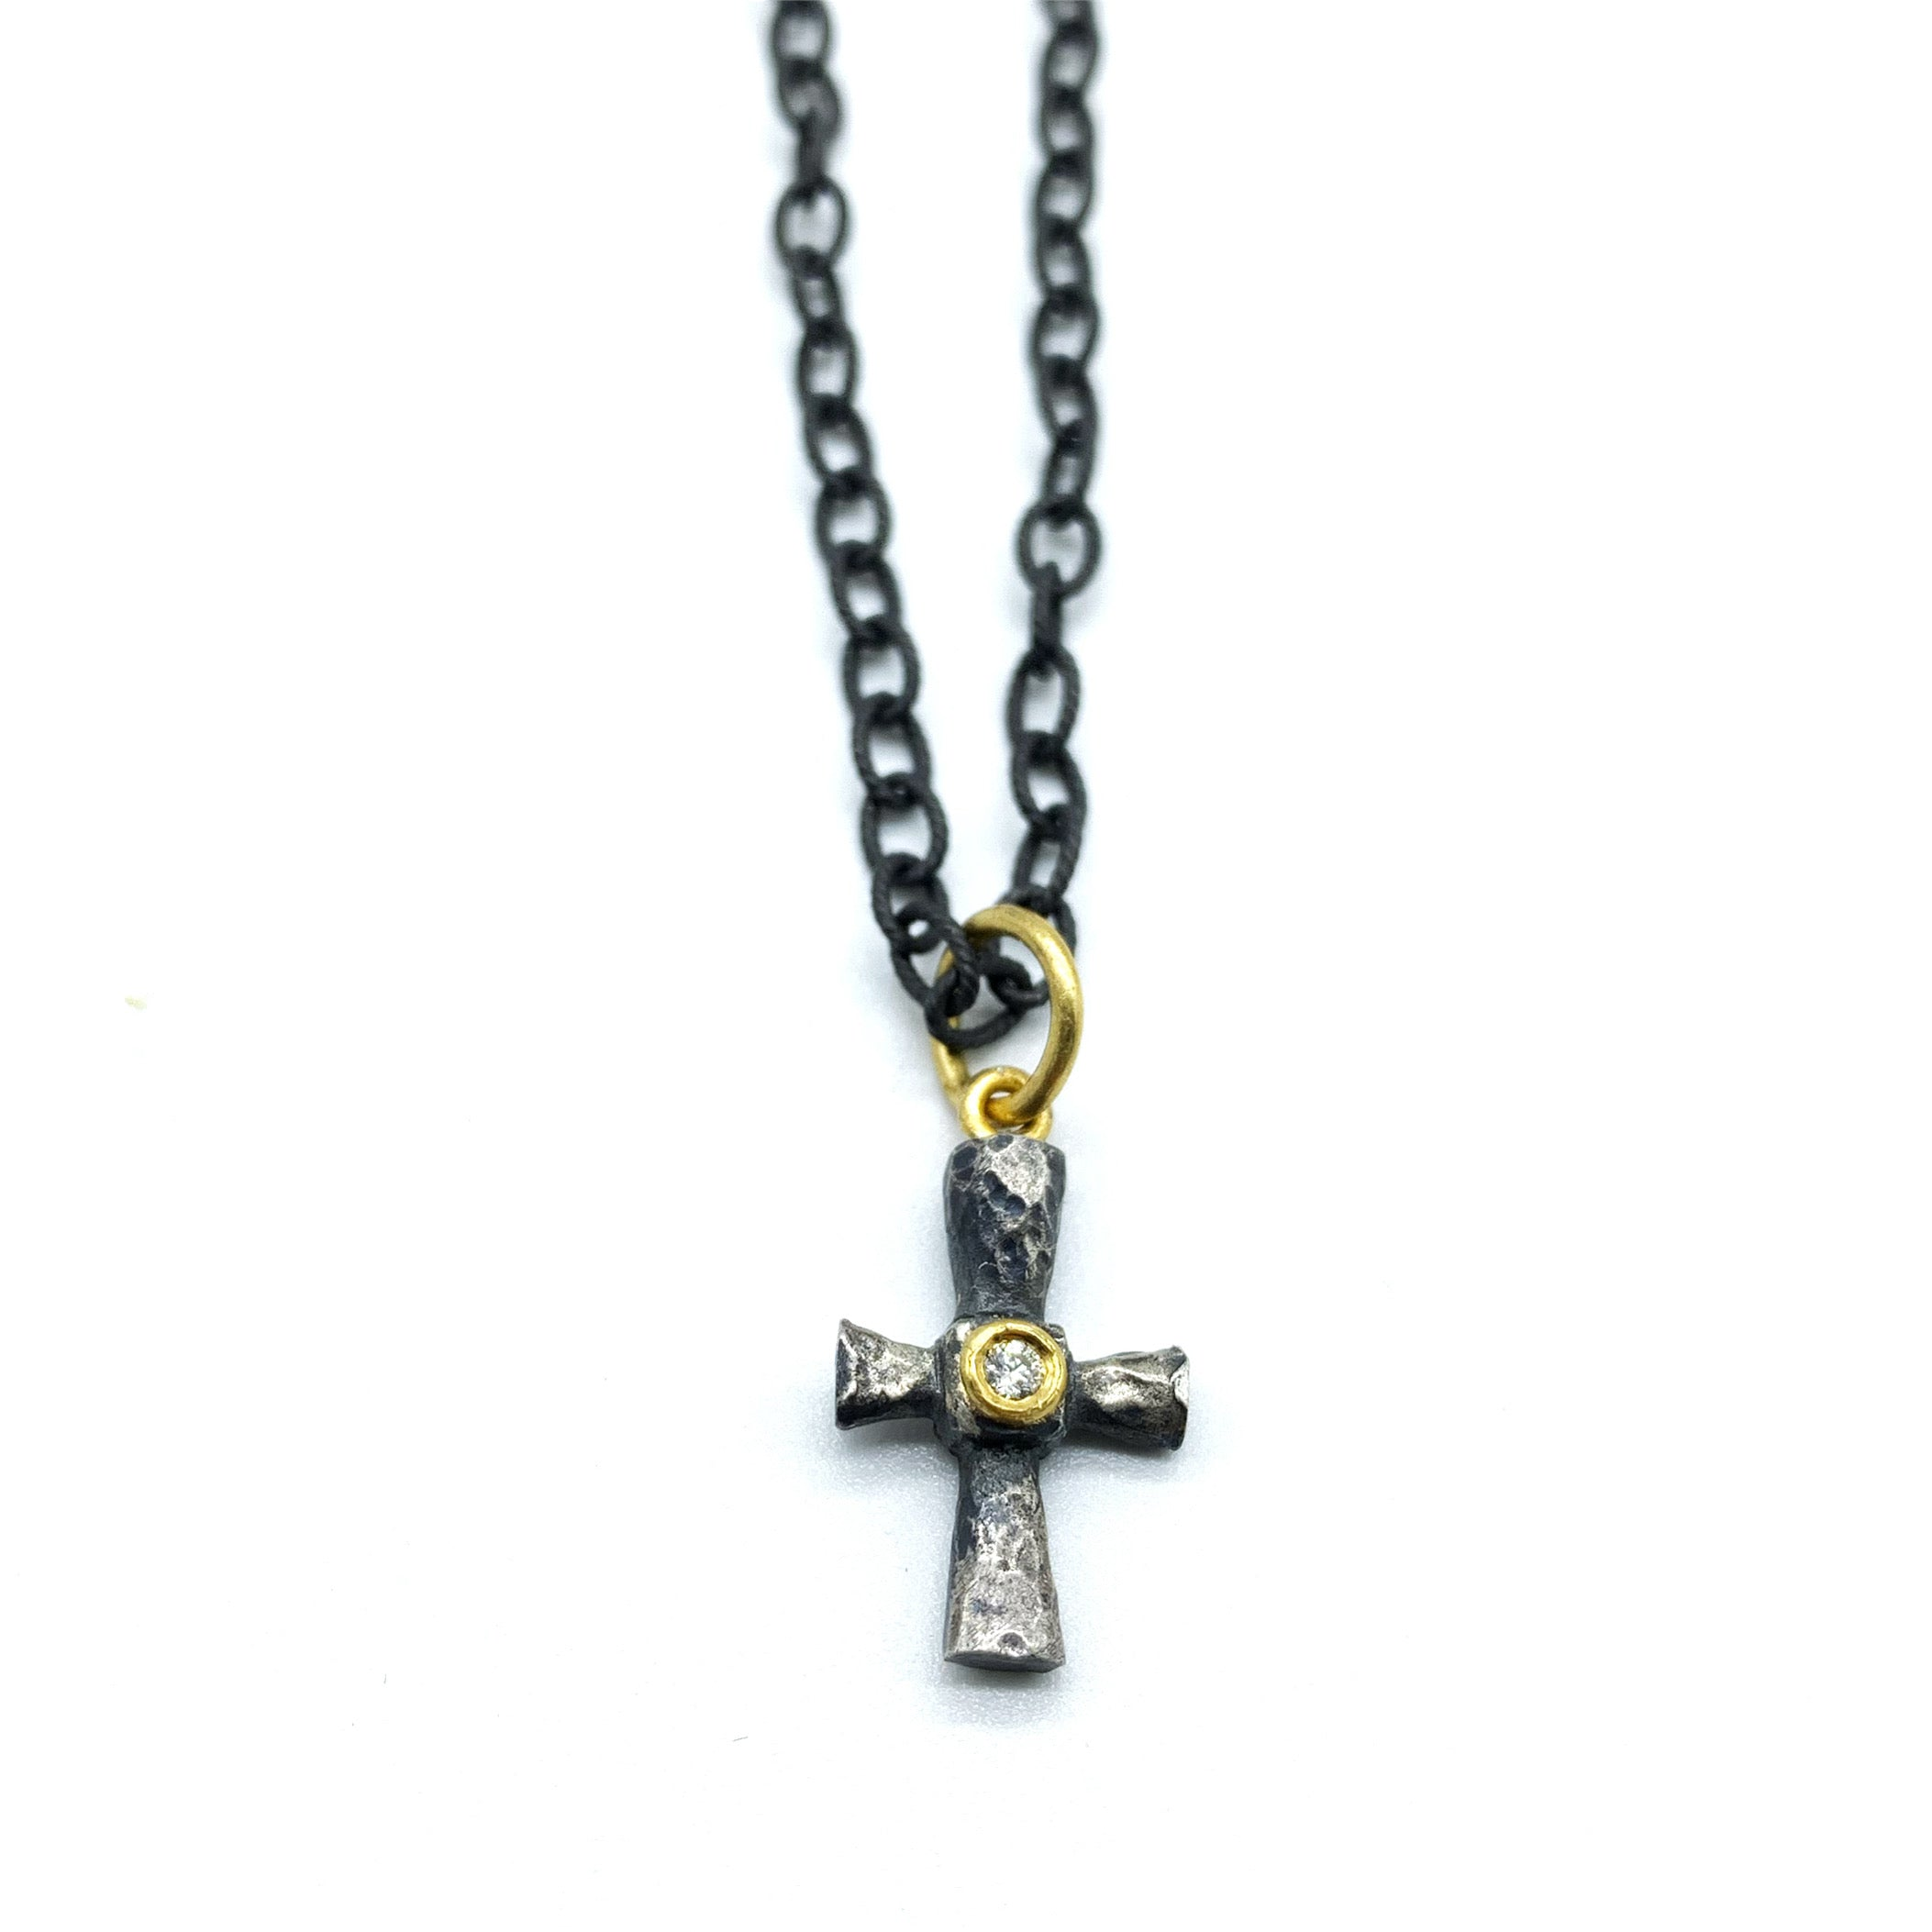 SMALL CROSS AMULET